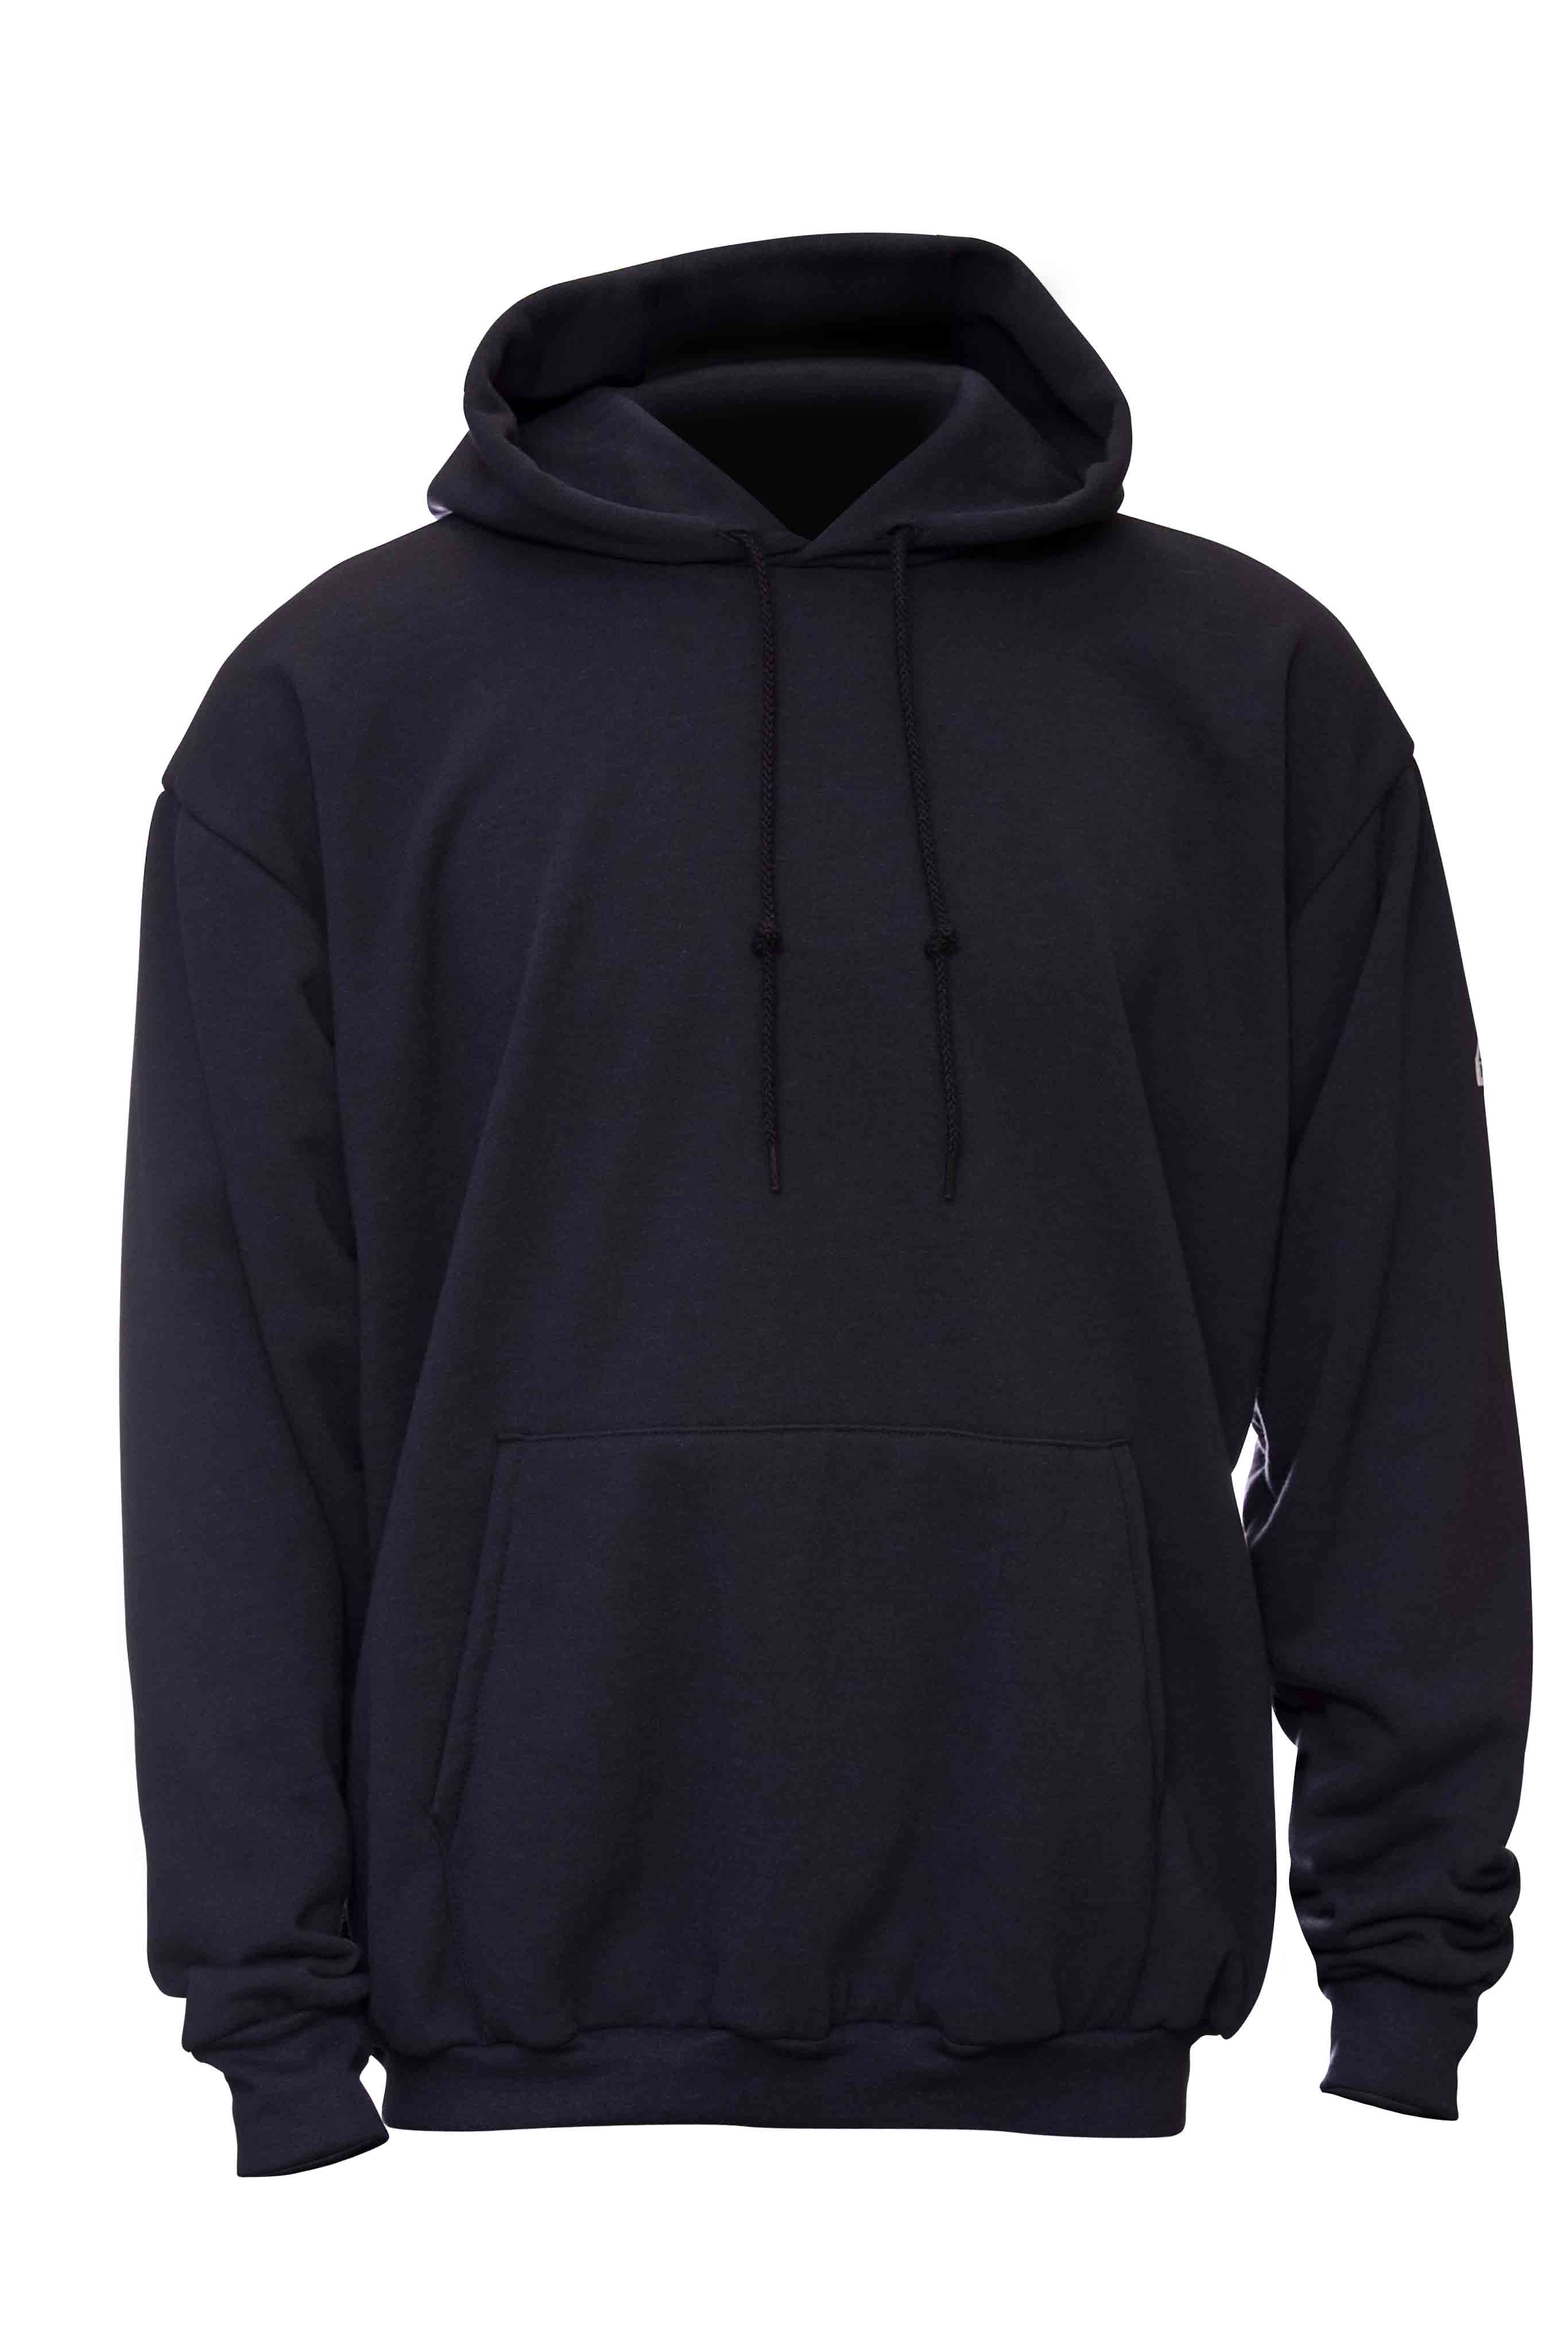 Bulwark Pullover Fleece Hooded Sweatshirt SMH2 - These products are standouts from the most revolutionary flame resistant (FR) layering system on the market - a collaboration between Polartec, the leading manufacturer of performance fabrics, and Bulwark, the world's largest manufacturer of FR apparel. Bulwark's new line of Polartecr FR technical workwear garments focus on superior comfort, worker image, moisture management, and of course - flame resistance. Polartec's line of Polartecr FR fabrics are designed to work together, creating a layering system that has less bulk, better mobility, greater comfort, and more breathability. With the look and soft hand of a classic hooded sweatshirt, the Bulwark Pullover Fleece Hooded Sweatshirt SMH2 is made of Polartecr Thermal FRr fabric which provides inherent flame resistance, superior warmth without weight, high breathability, and quick dry times.